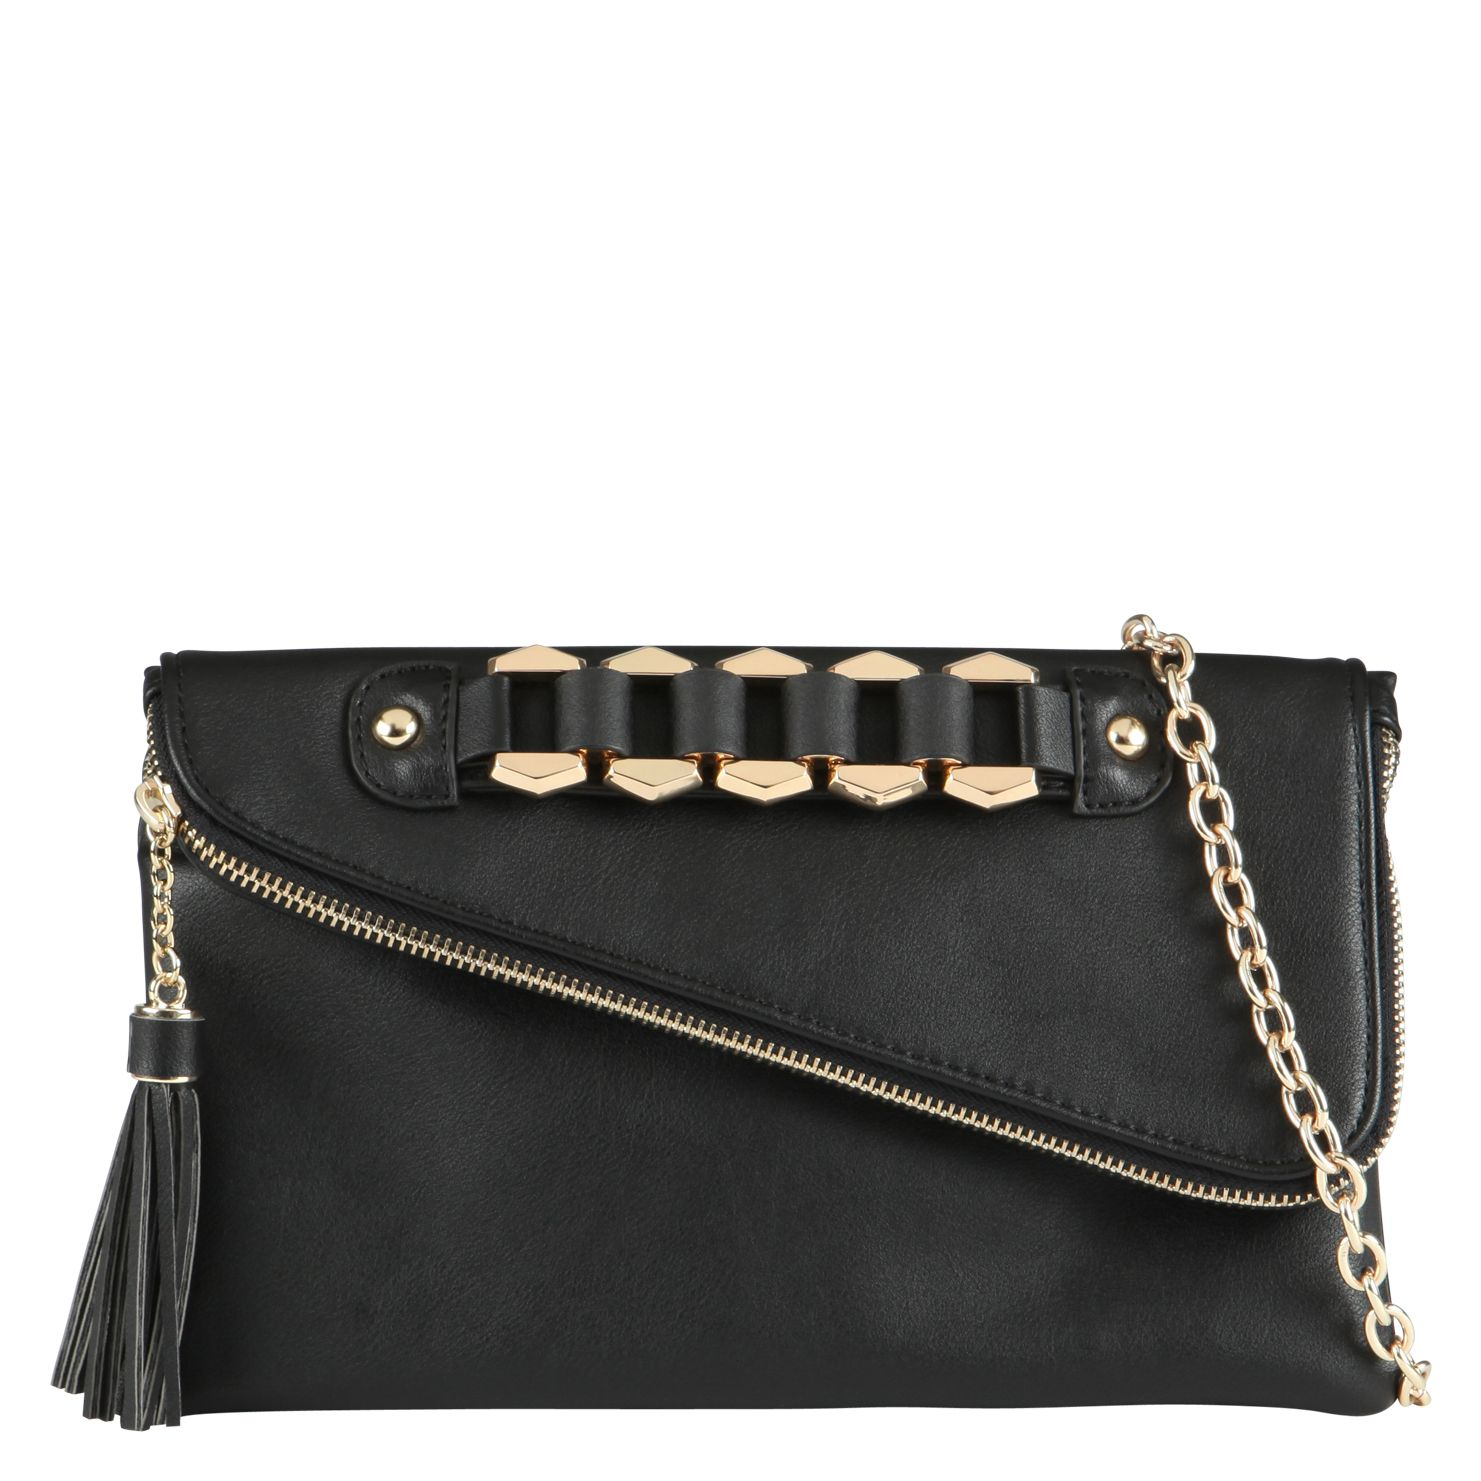 Mcray clutch shoulder bag